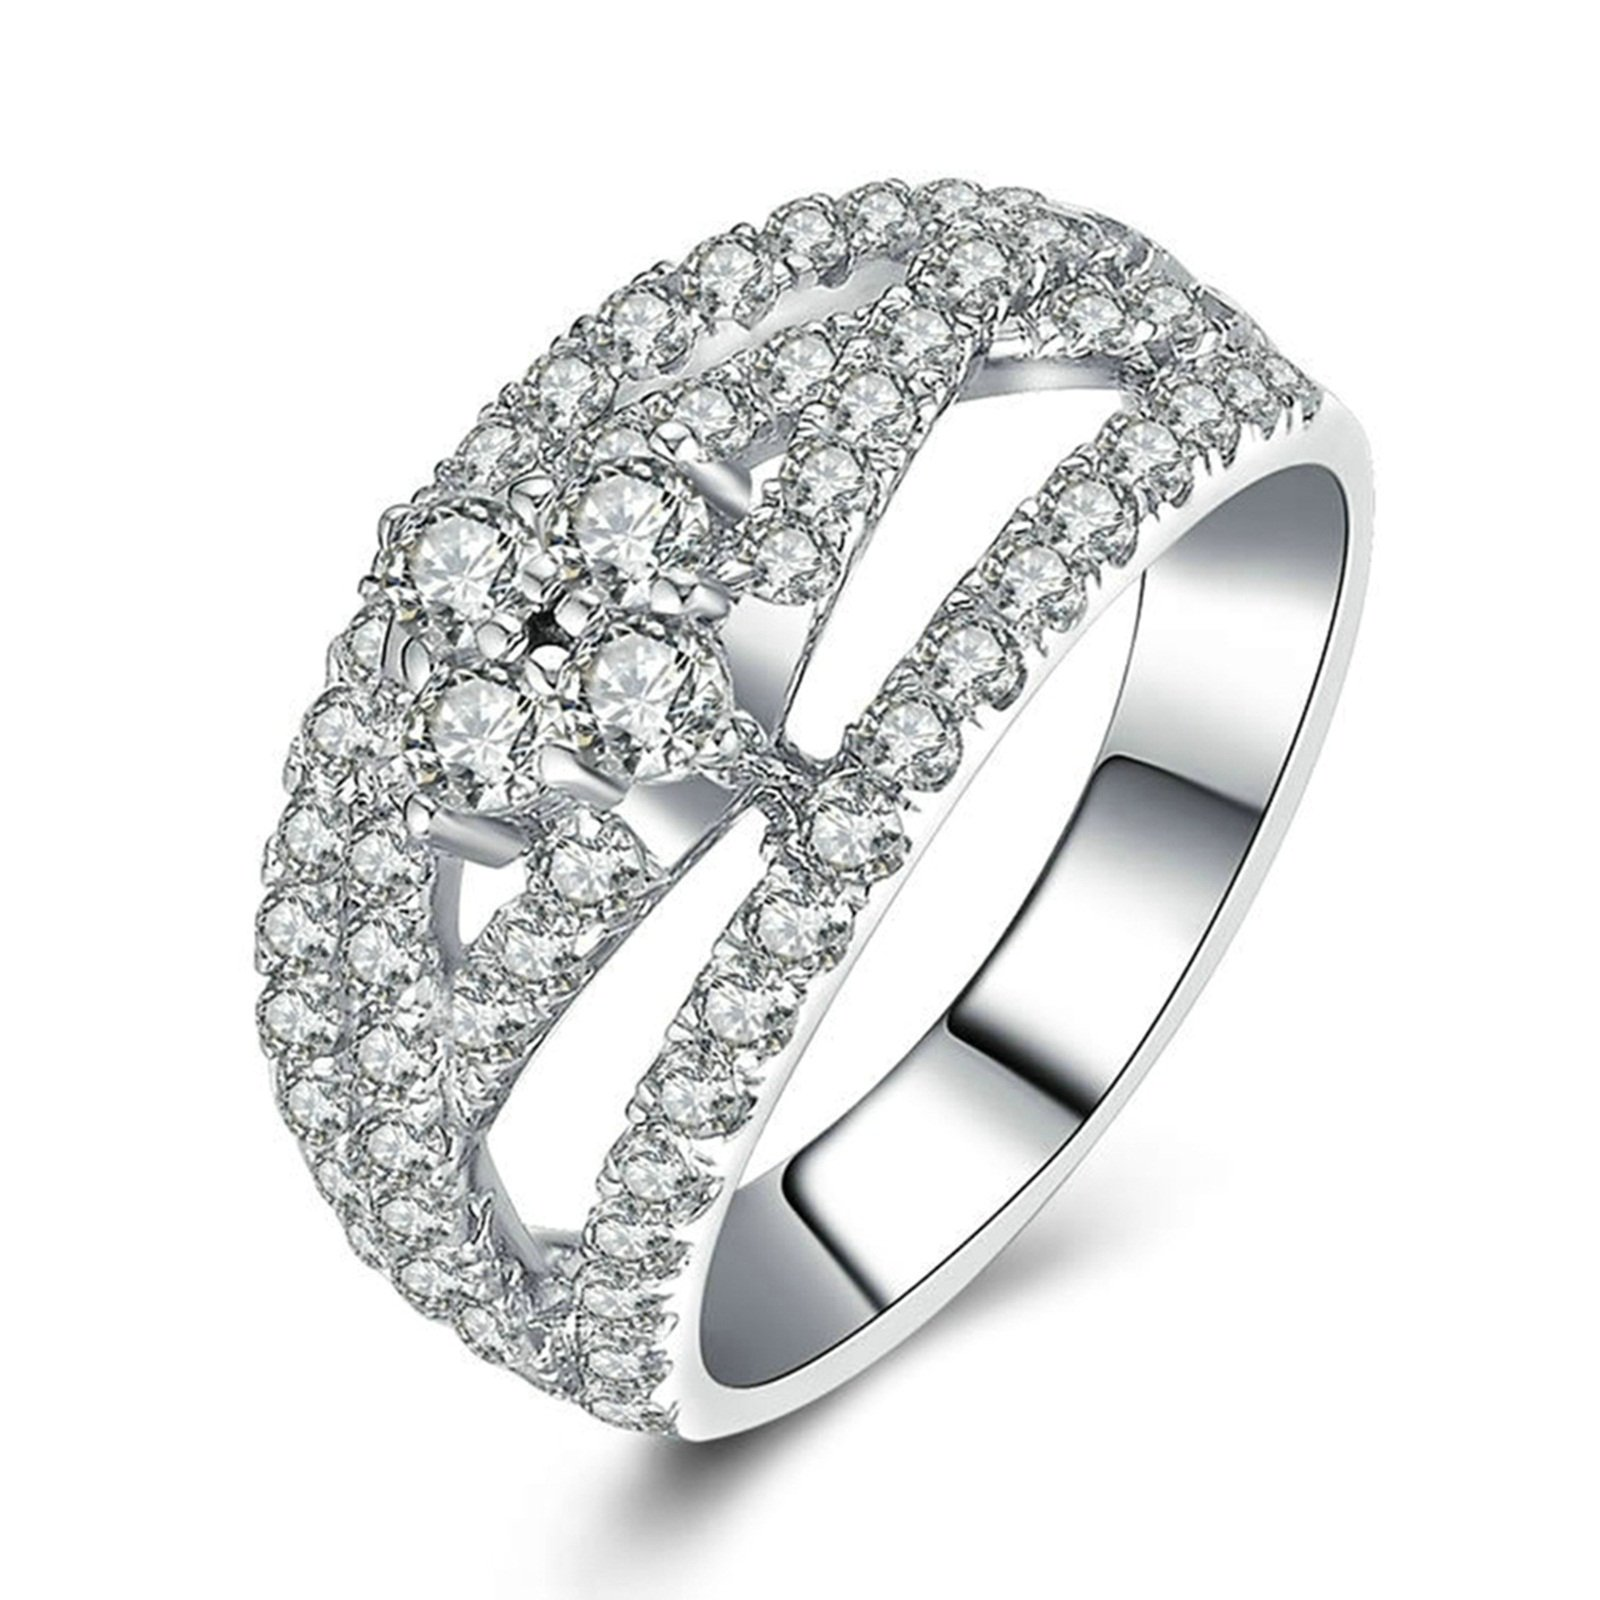 Daesar Engraved Ring Sterling Silver Hollow Ring Round White Cubic Zirconia Ring Size 5